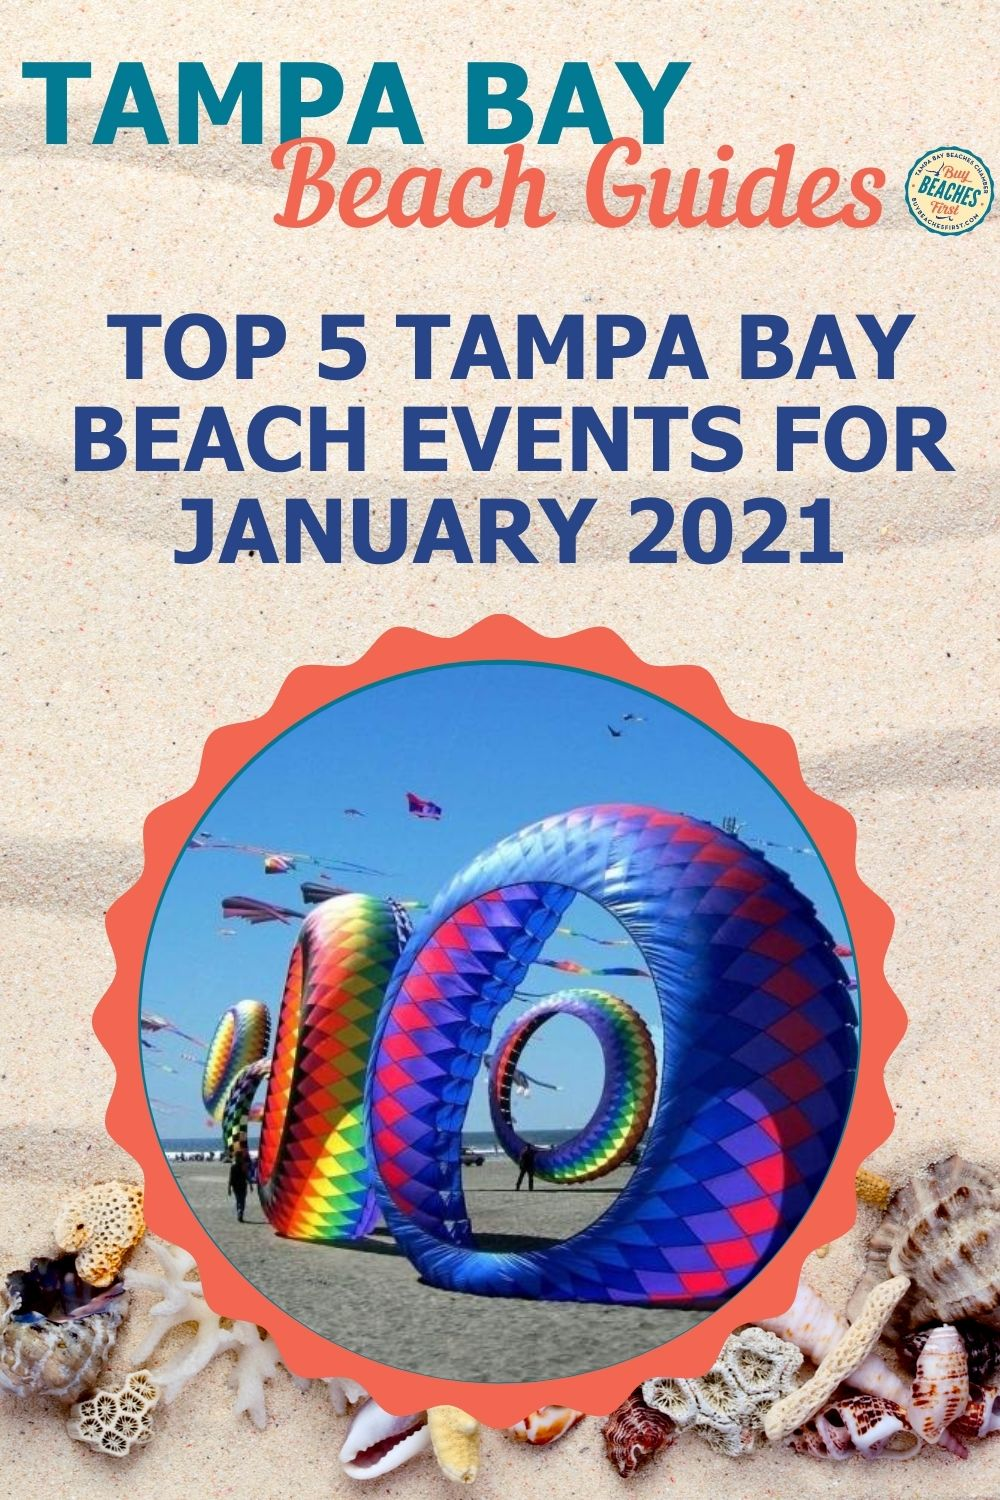 Top 5 Tampa Bay Beach Events for January 2021